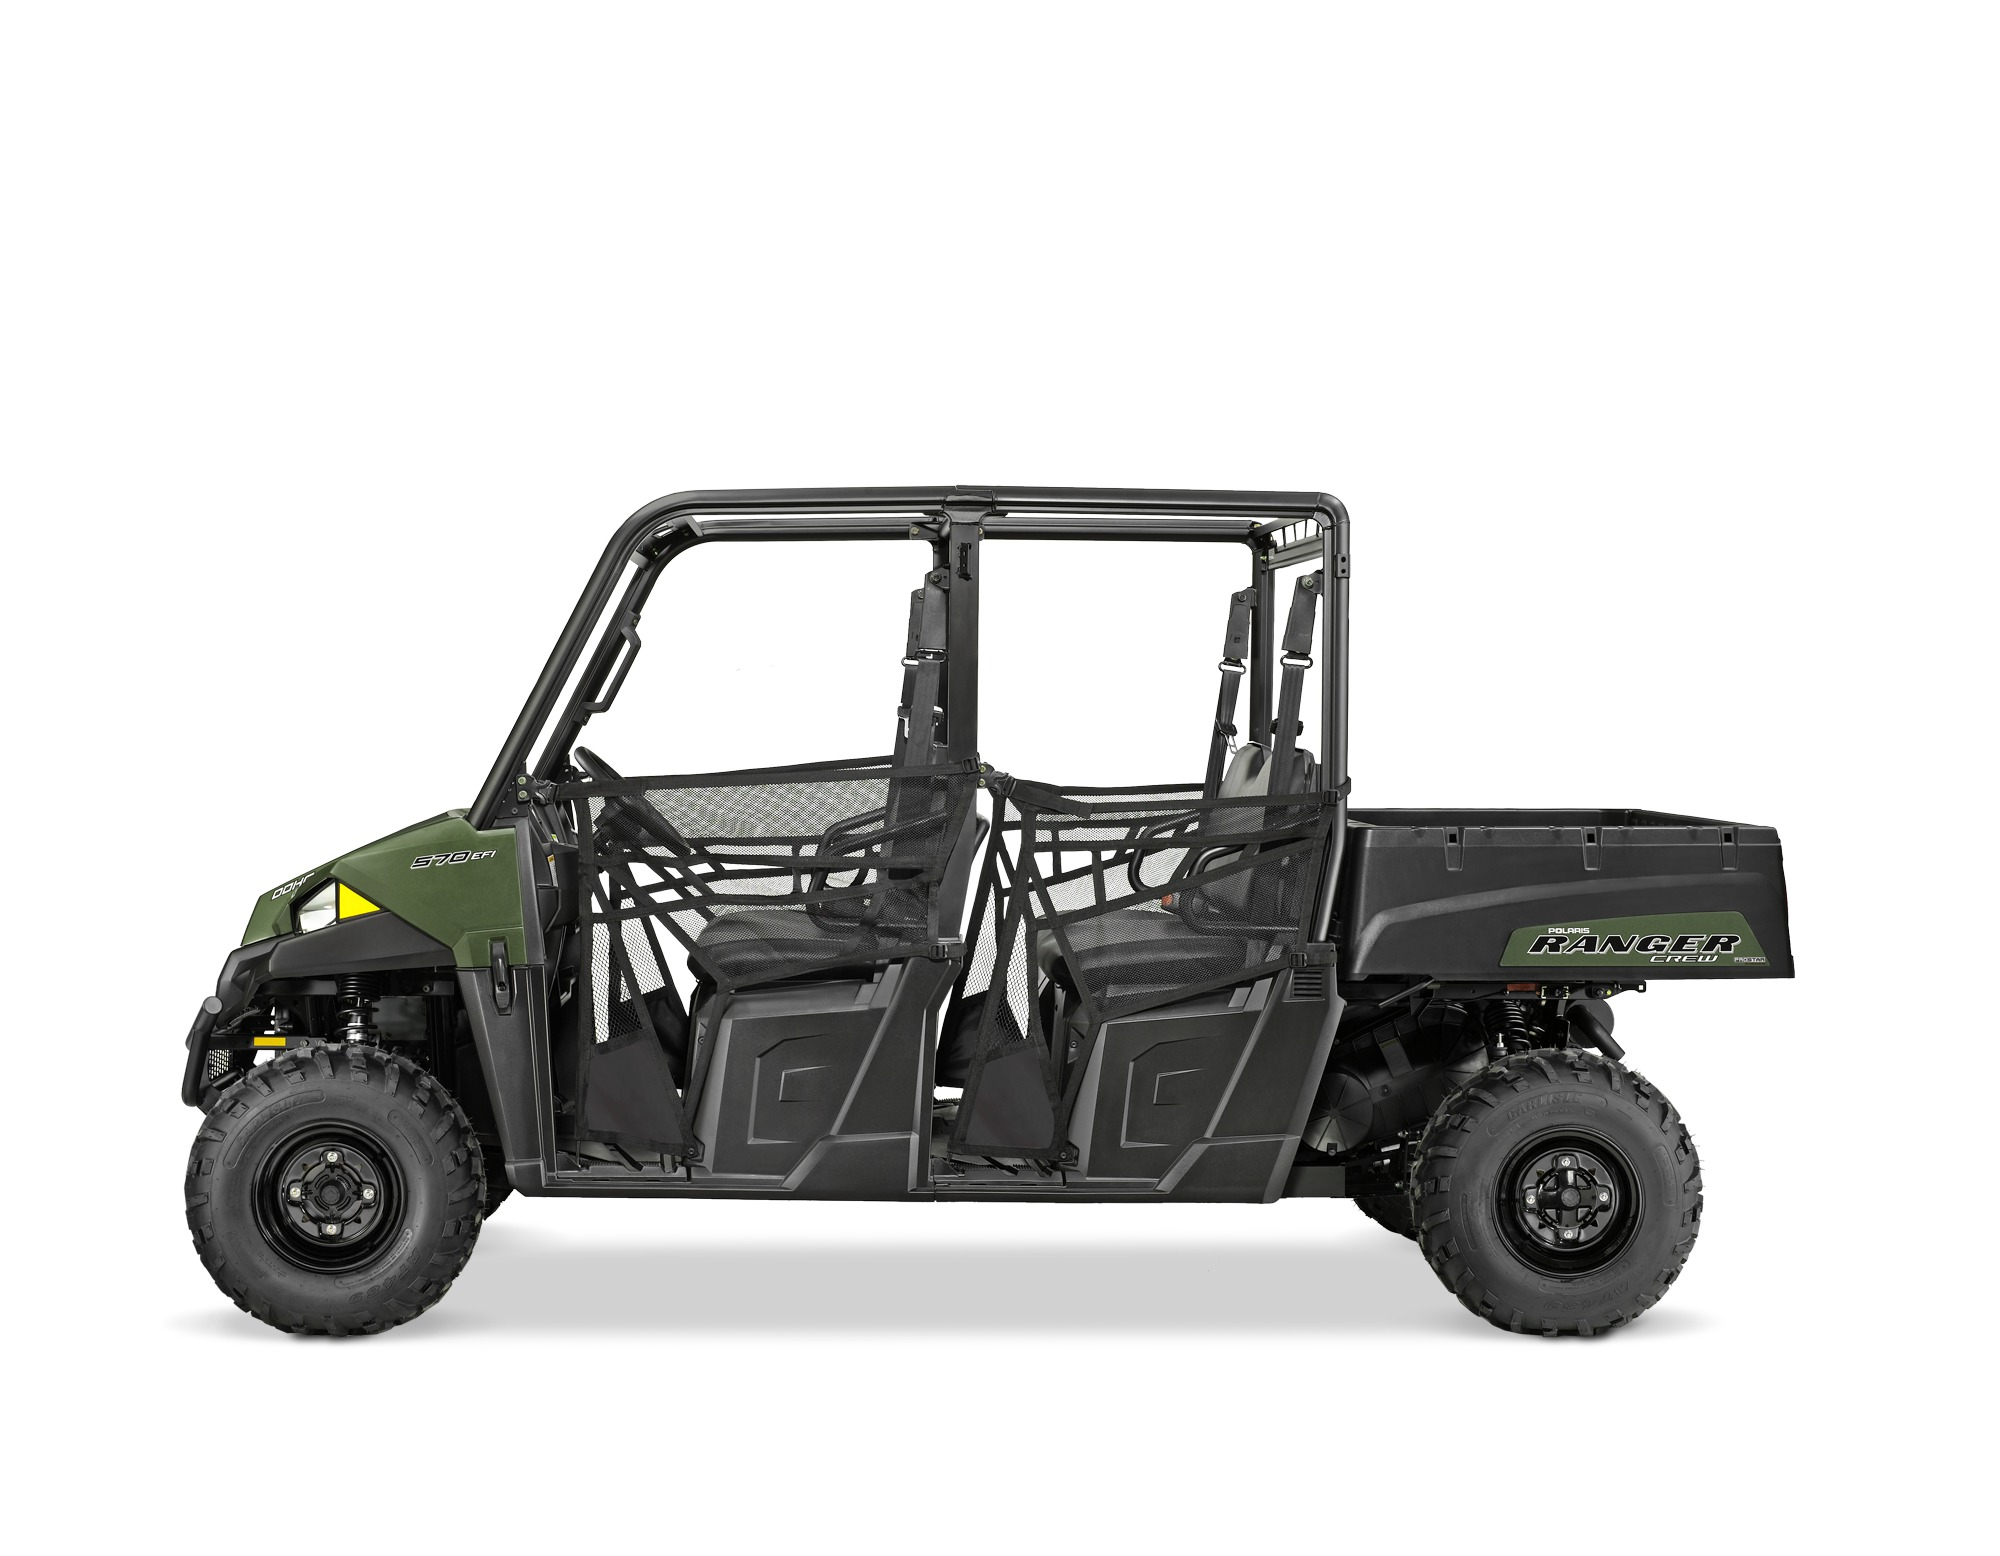 ford ranger nz with 2015 Polaris Ranger Side By Side 4 Seater on Standard furthermore 608357017 220 1386 as well 2015 Polaris Ranger Side By Side 4 Seater in addition Review additionally 2018 Ford Ranger Raptor.